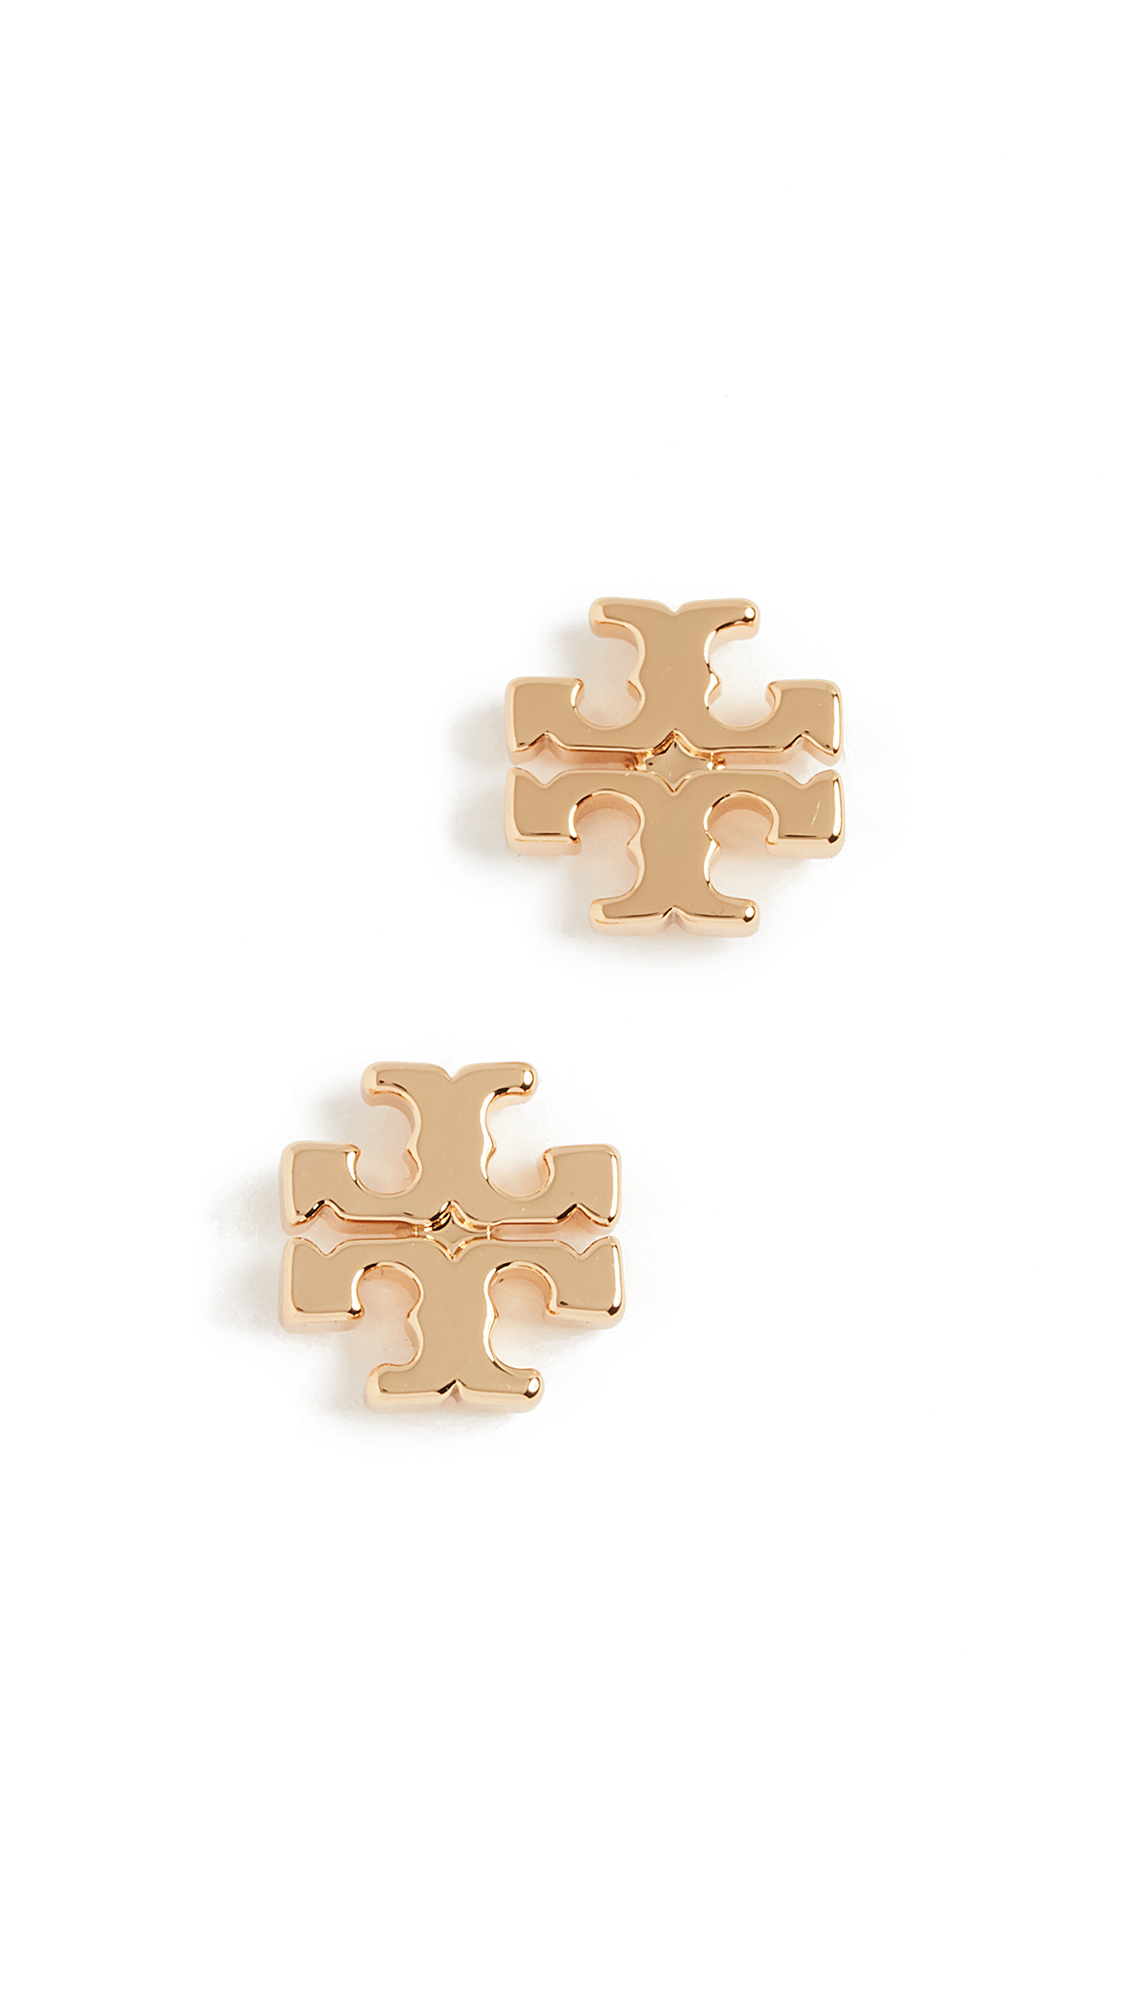 Tory Burch Logo Stud Earrings - Shiny Gold